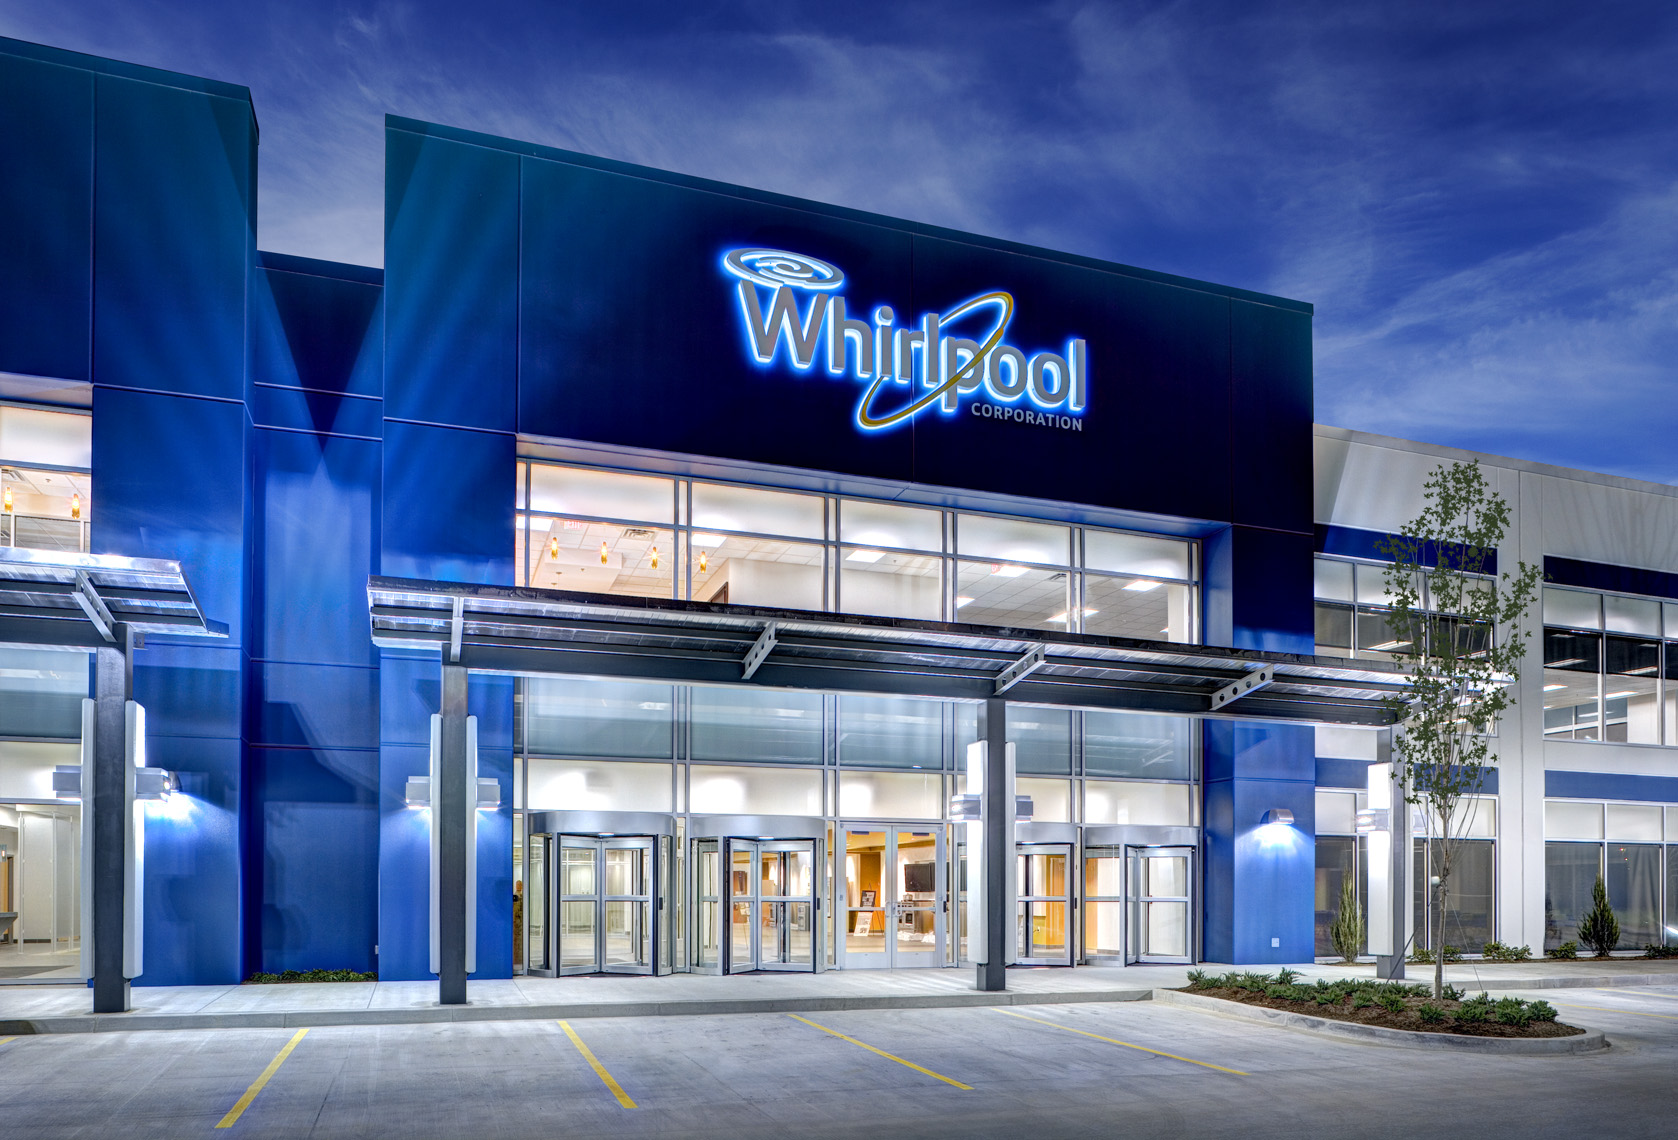 Twilight at Whirpool Corporation testing labs and distribution in Cleveland, TN